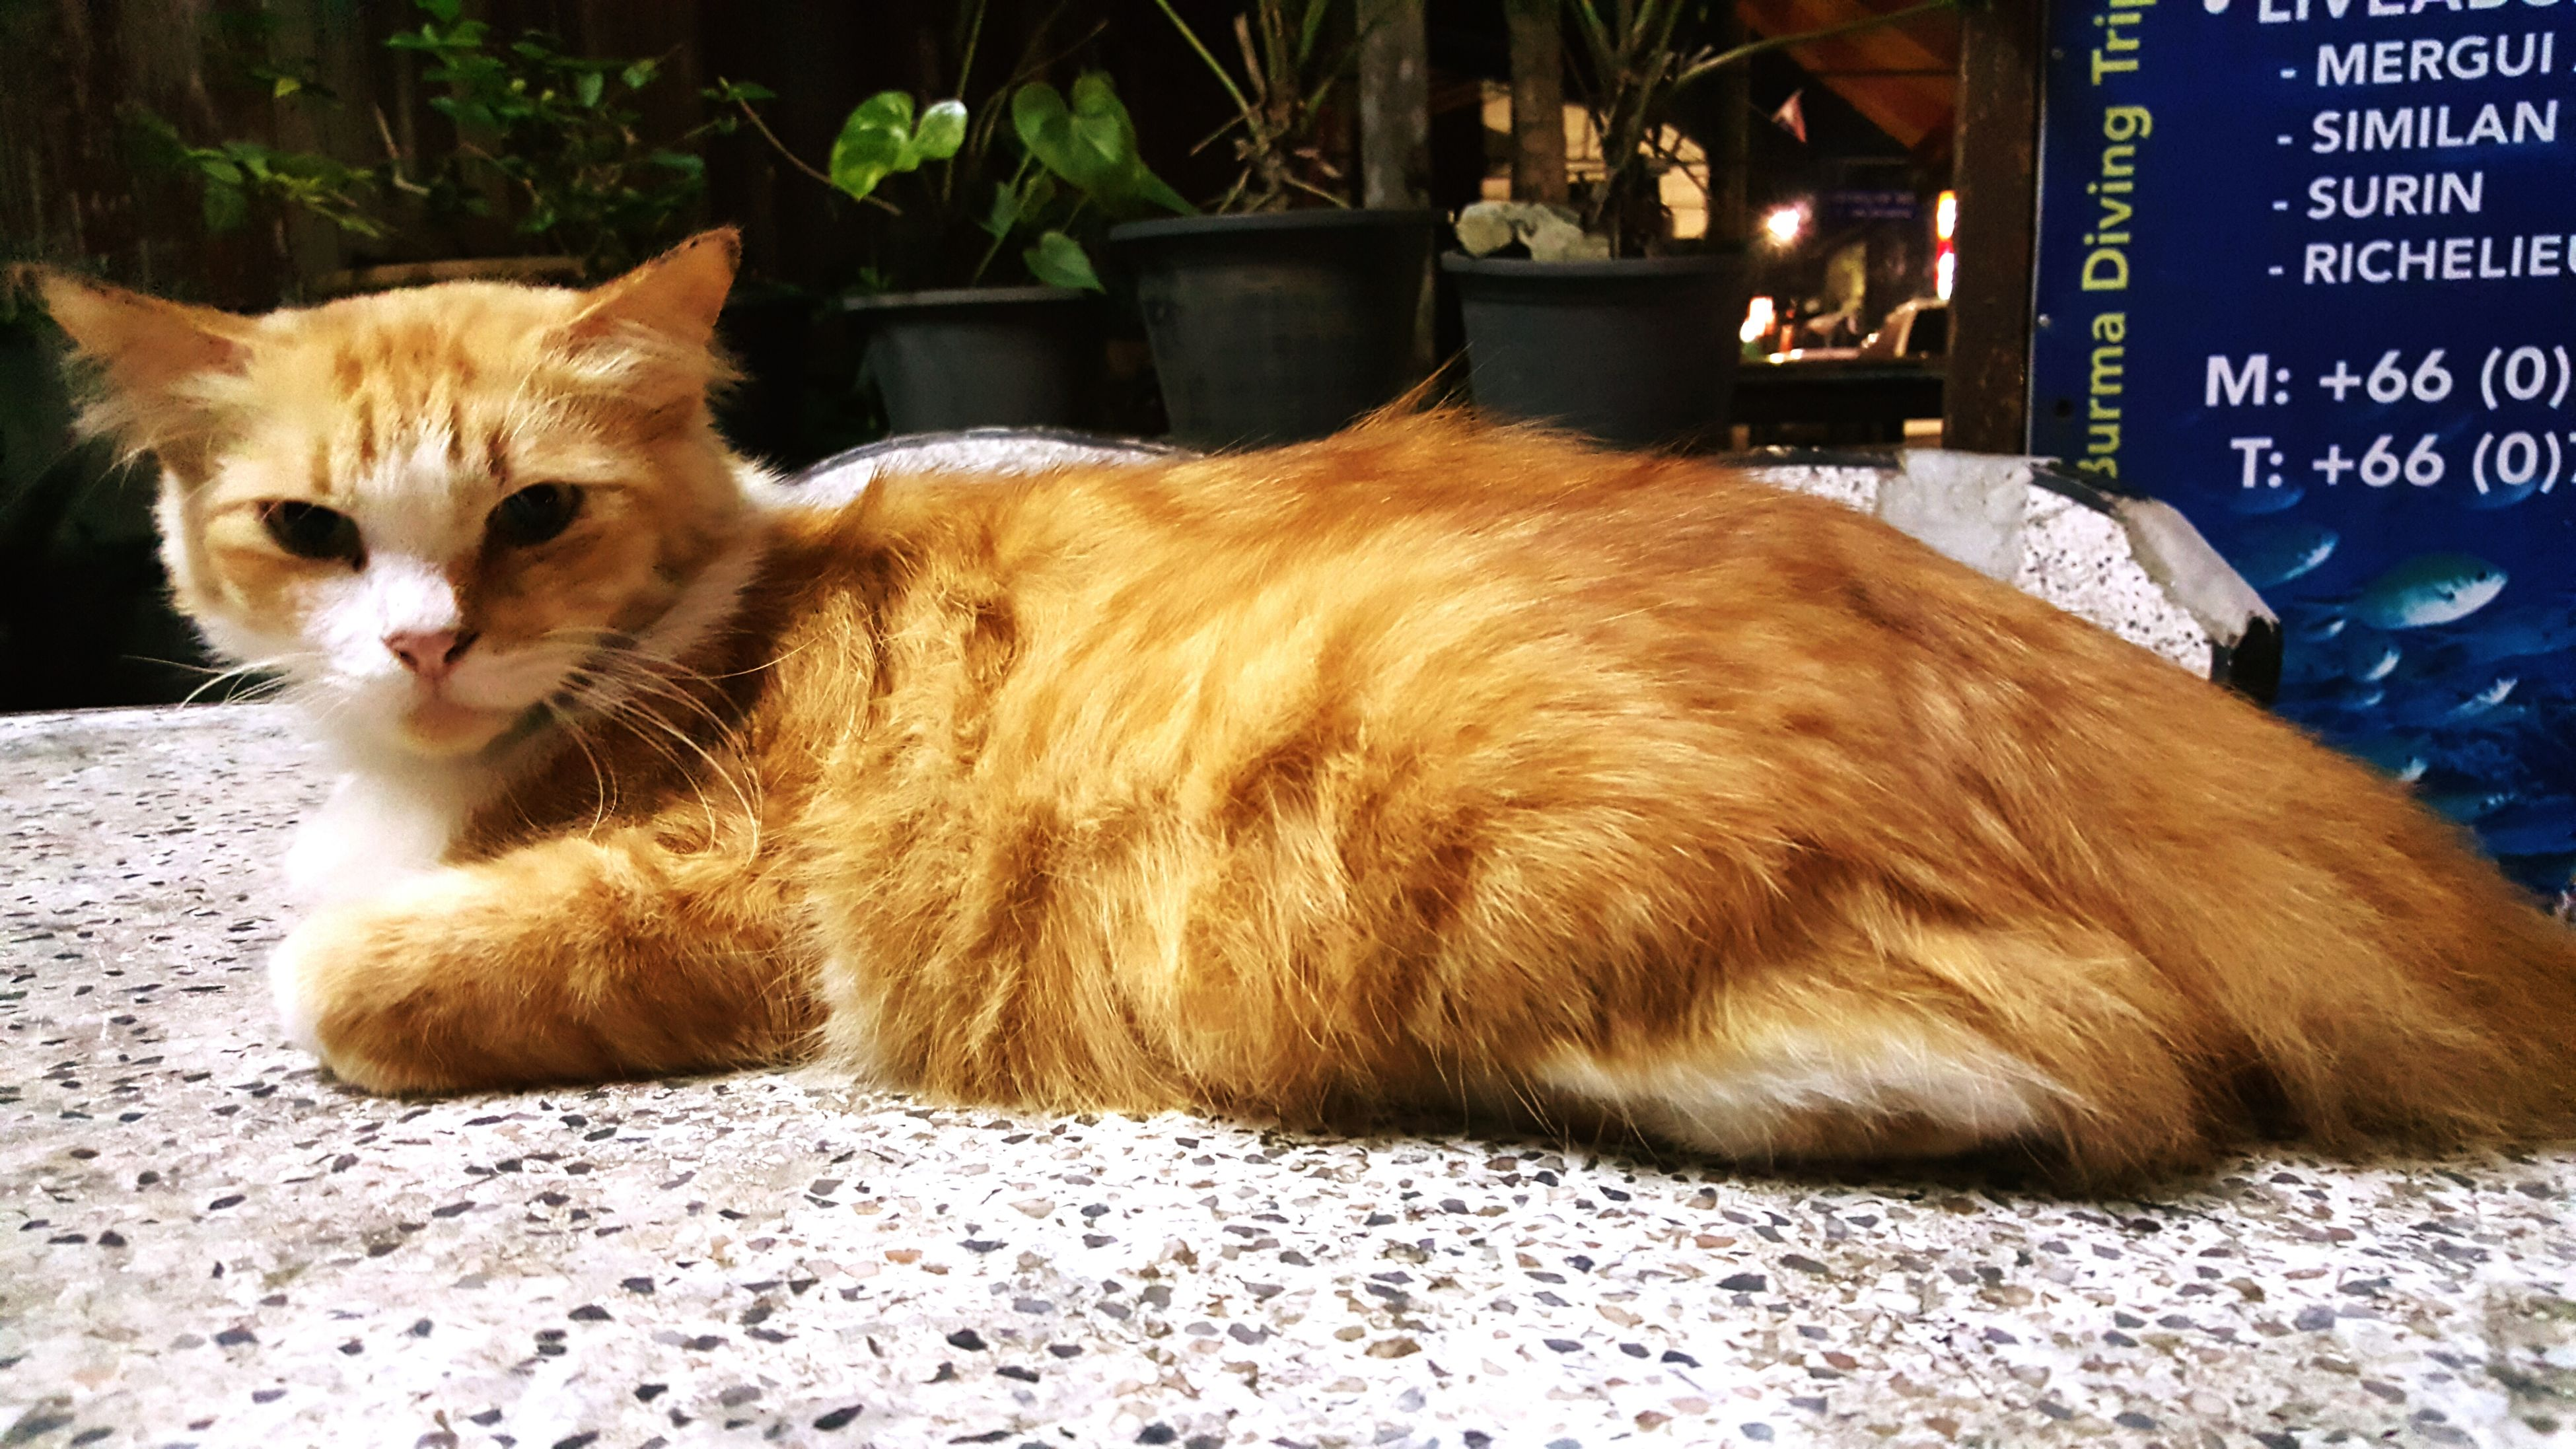 animal themes, mammal, domestic animals, one animal, domestic cat, pets, cat, feline, whisker, relaxation, portrait, looking at camera, alertness, sitting, lying down, no people, close-up, outdoors, two animals